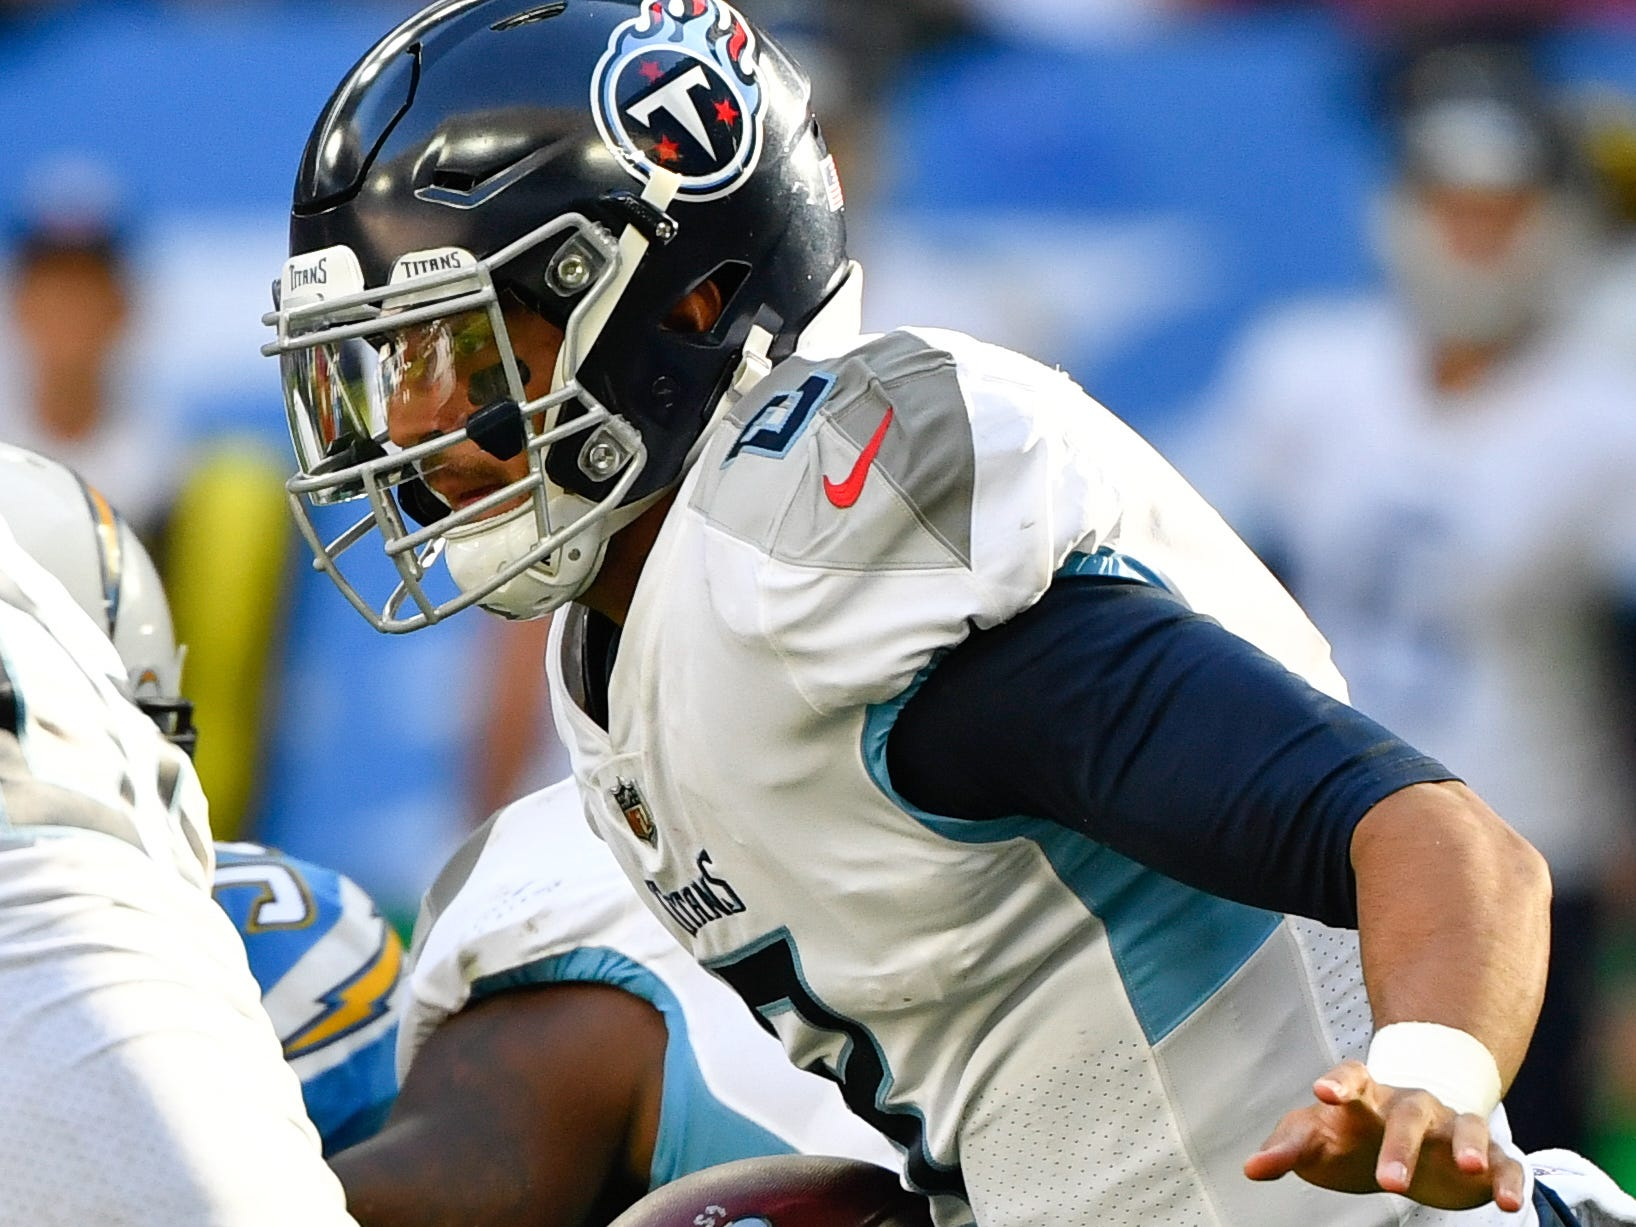 21. Titans (23): Trick — Tennessee draws Dallas team Monday that's alternated wins and losses over past 10 games. Uh oh, Cowboys due for victory in Week 9.